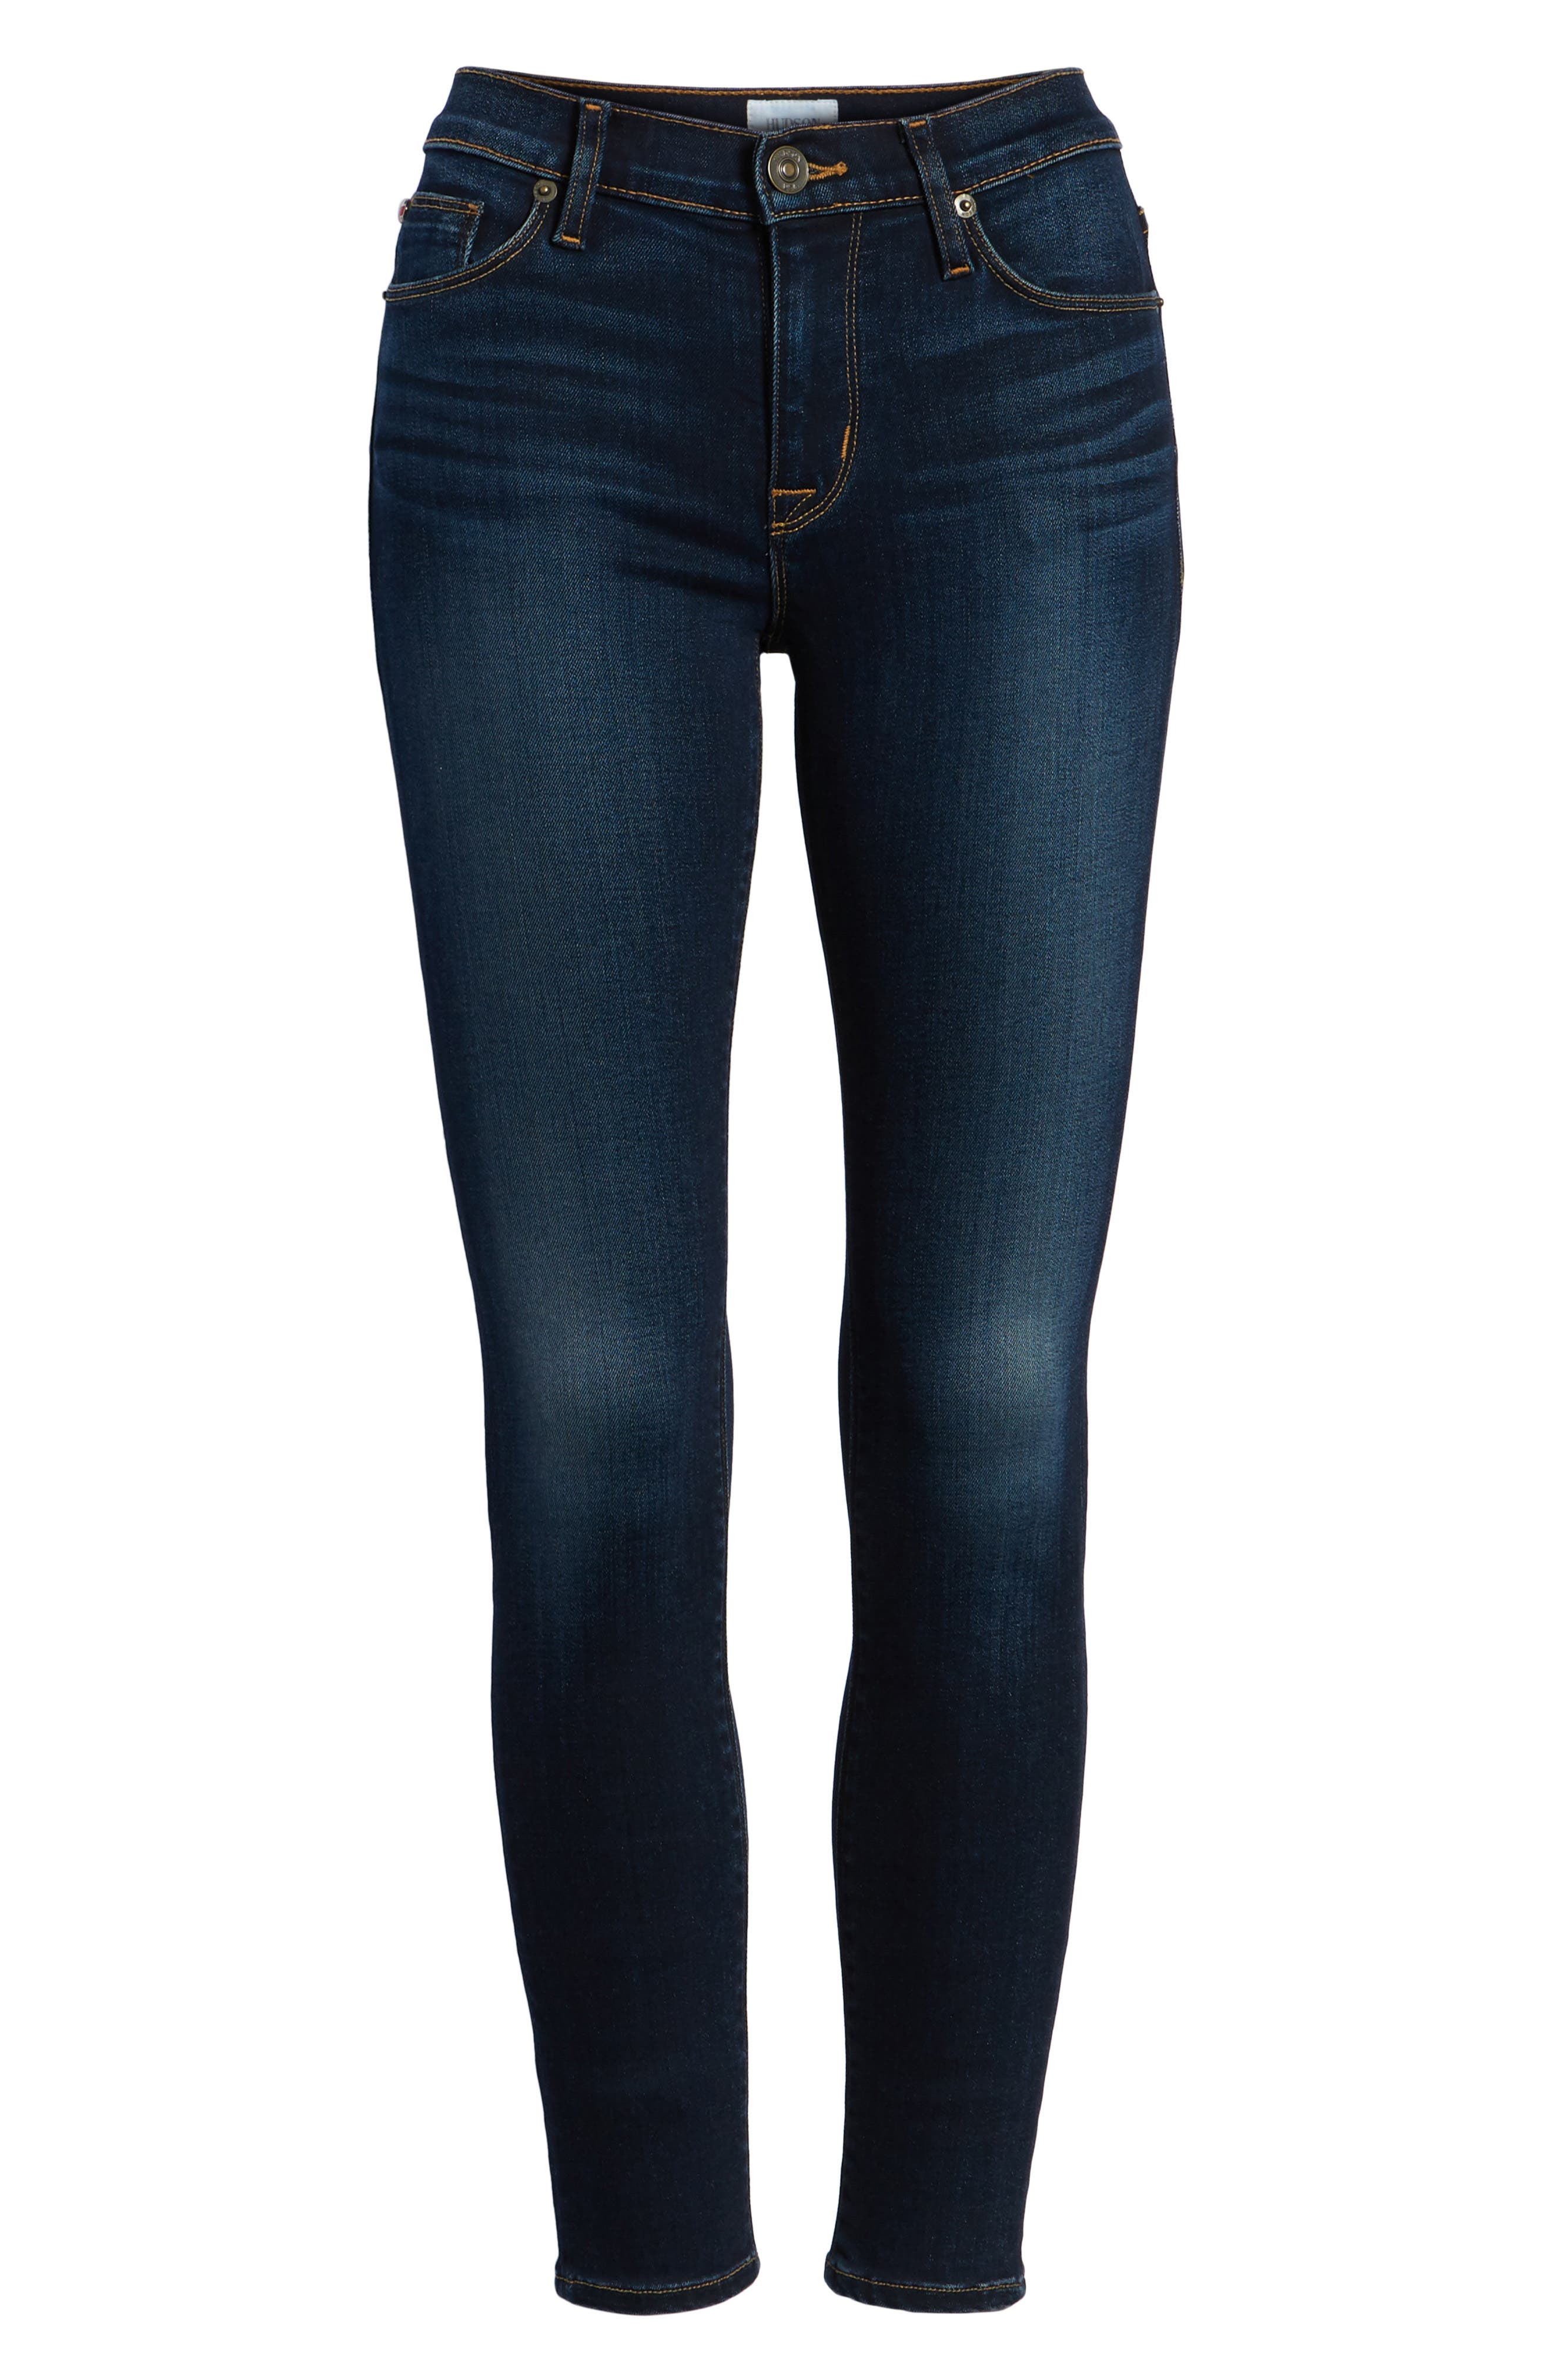 'Nico' Ankle Skinny Jeans,                             Alternate thumbnail 37, color,